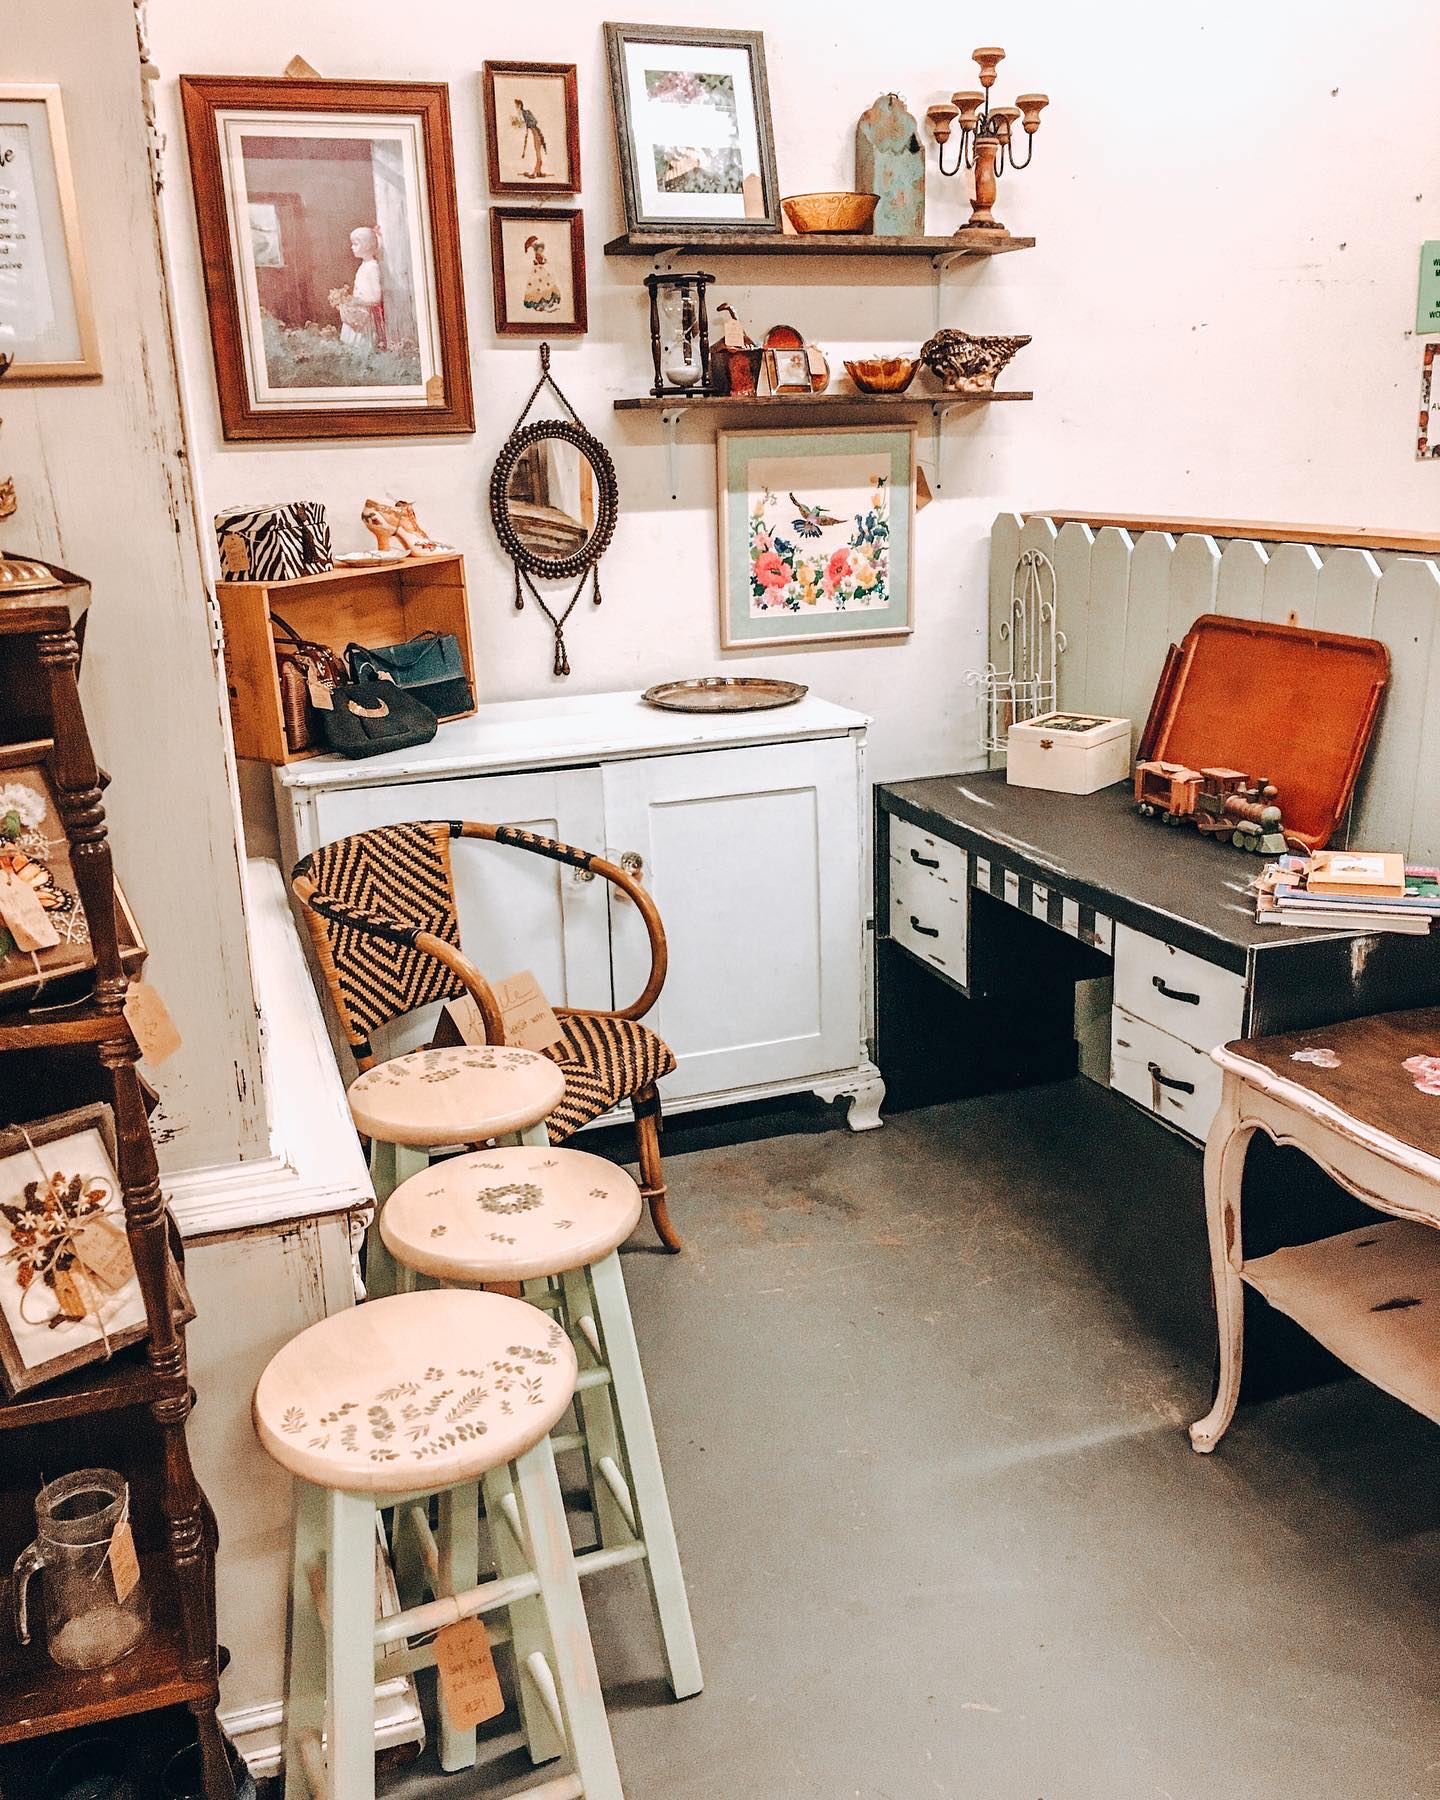 A photo of the antique booth